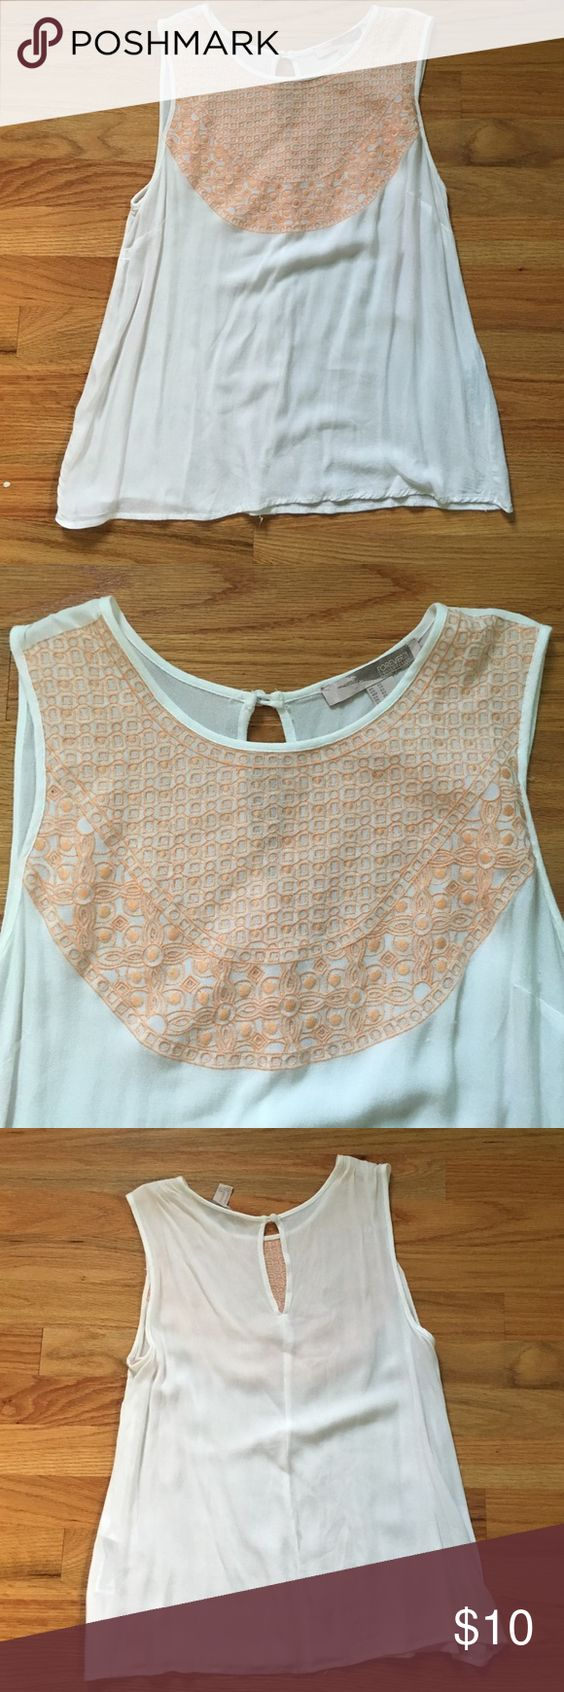 Forever 21 | Sleeveless Top Forever 21 Sleeveless Top! White top with orange detail/embroidering in front. Back of shirt has a button at the top. Very good condition and goes great with jeans! 100% Rayon. Forever 21 Tops Tank Tops